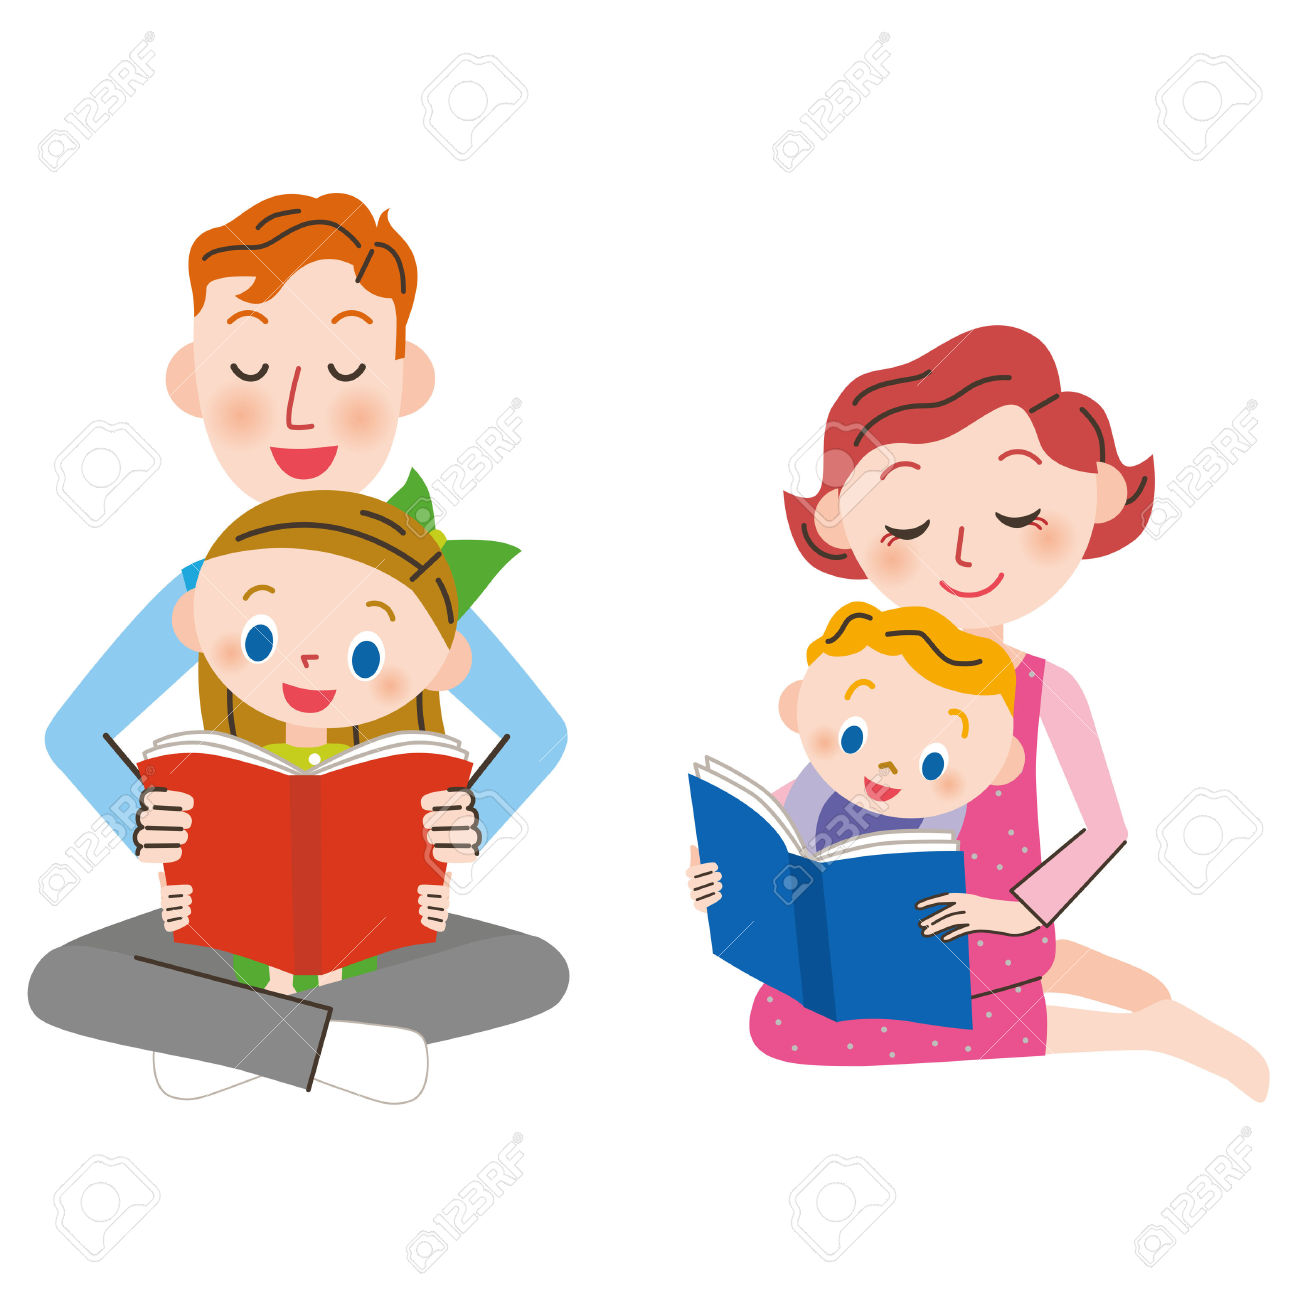 50,822 Parents And Children Stock Vector Illustration And Royalty.